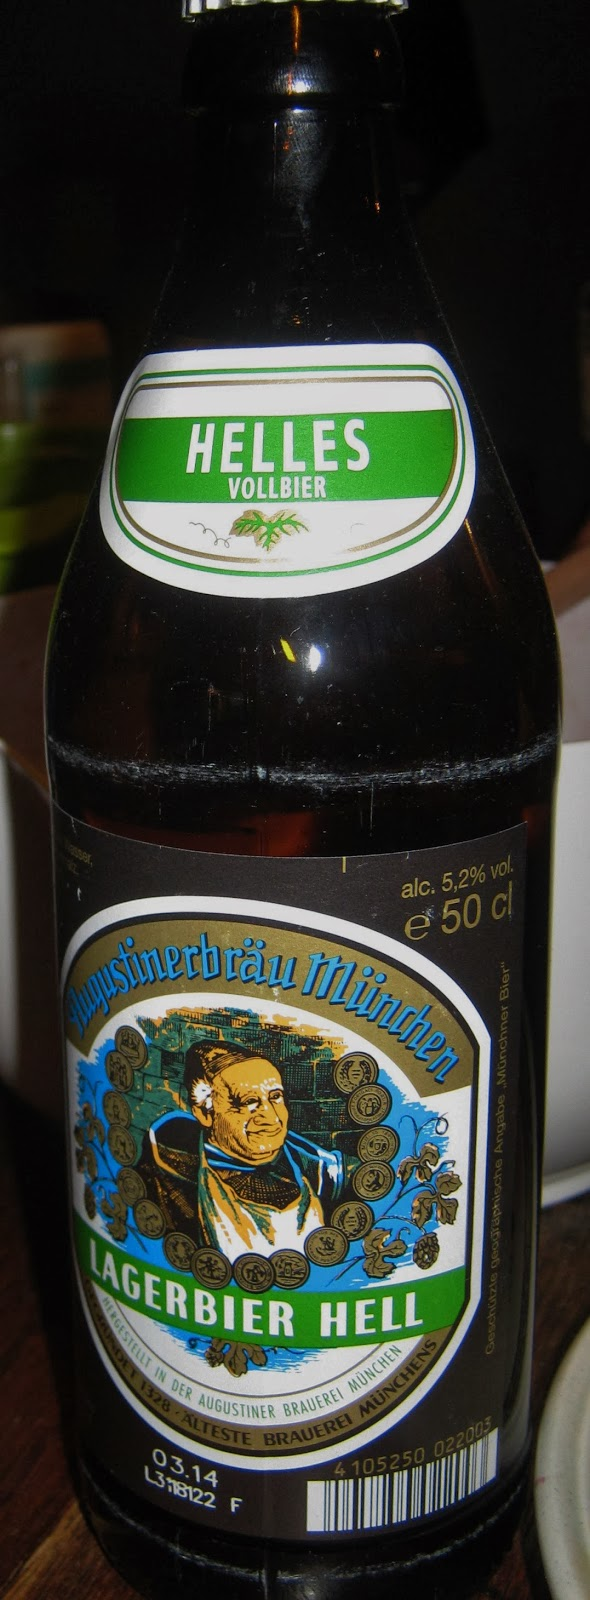 A bottle of Augustiner Helles beer